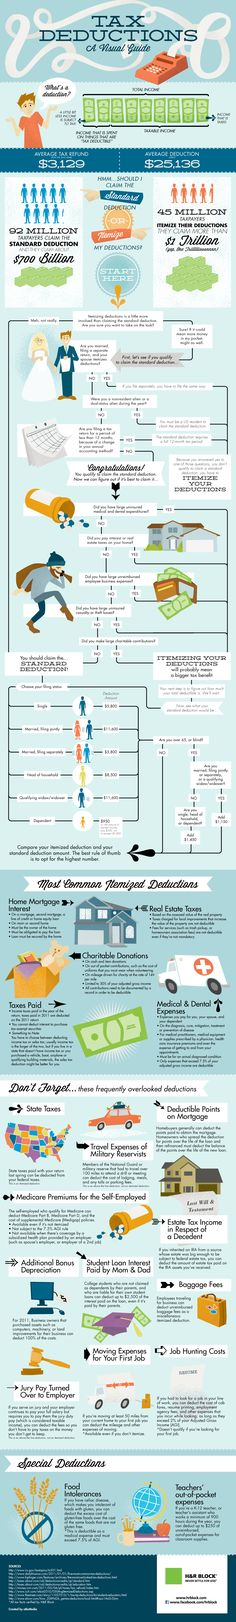 A Visual Guide to Tax Deductions from H&R Block